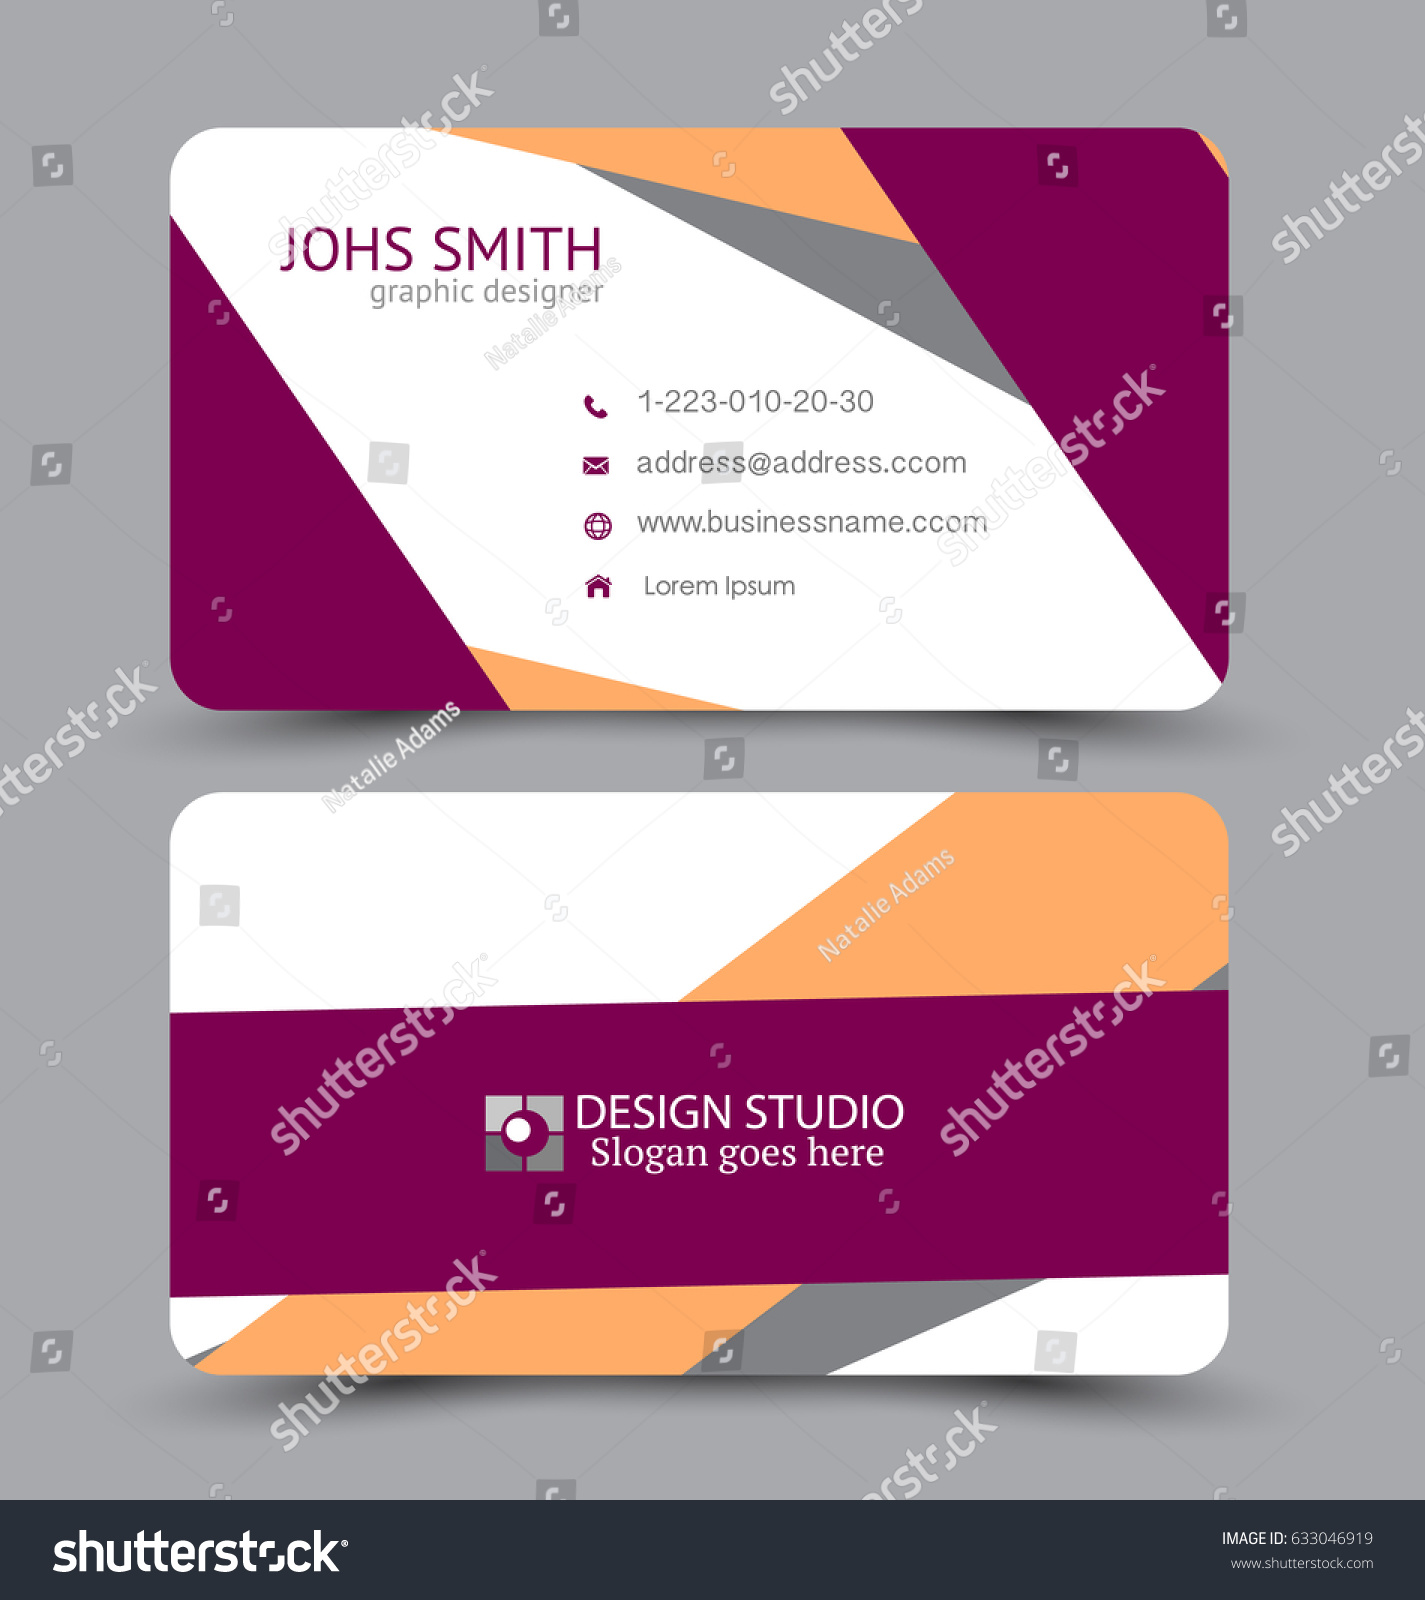 Business Card Design Set Template Company Stock Vector 633046919 ...